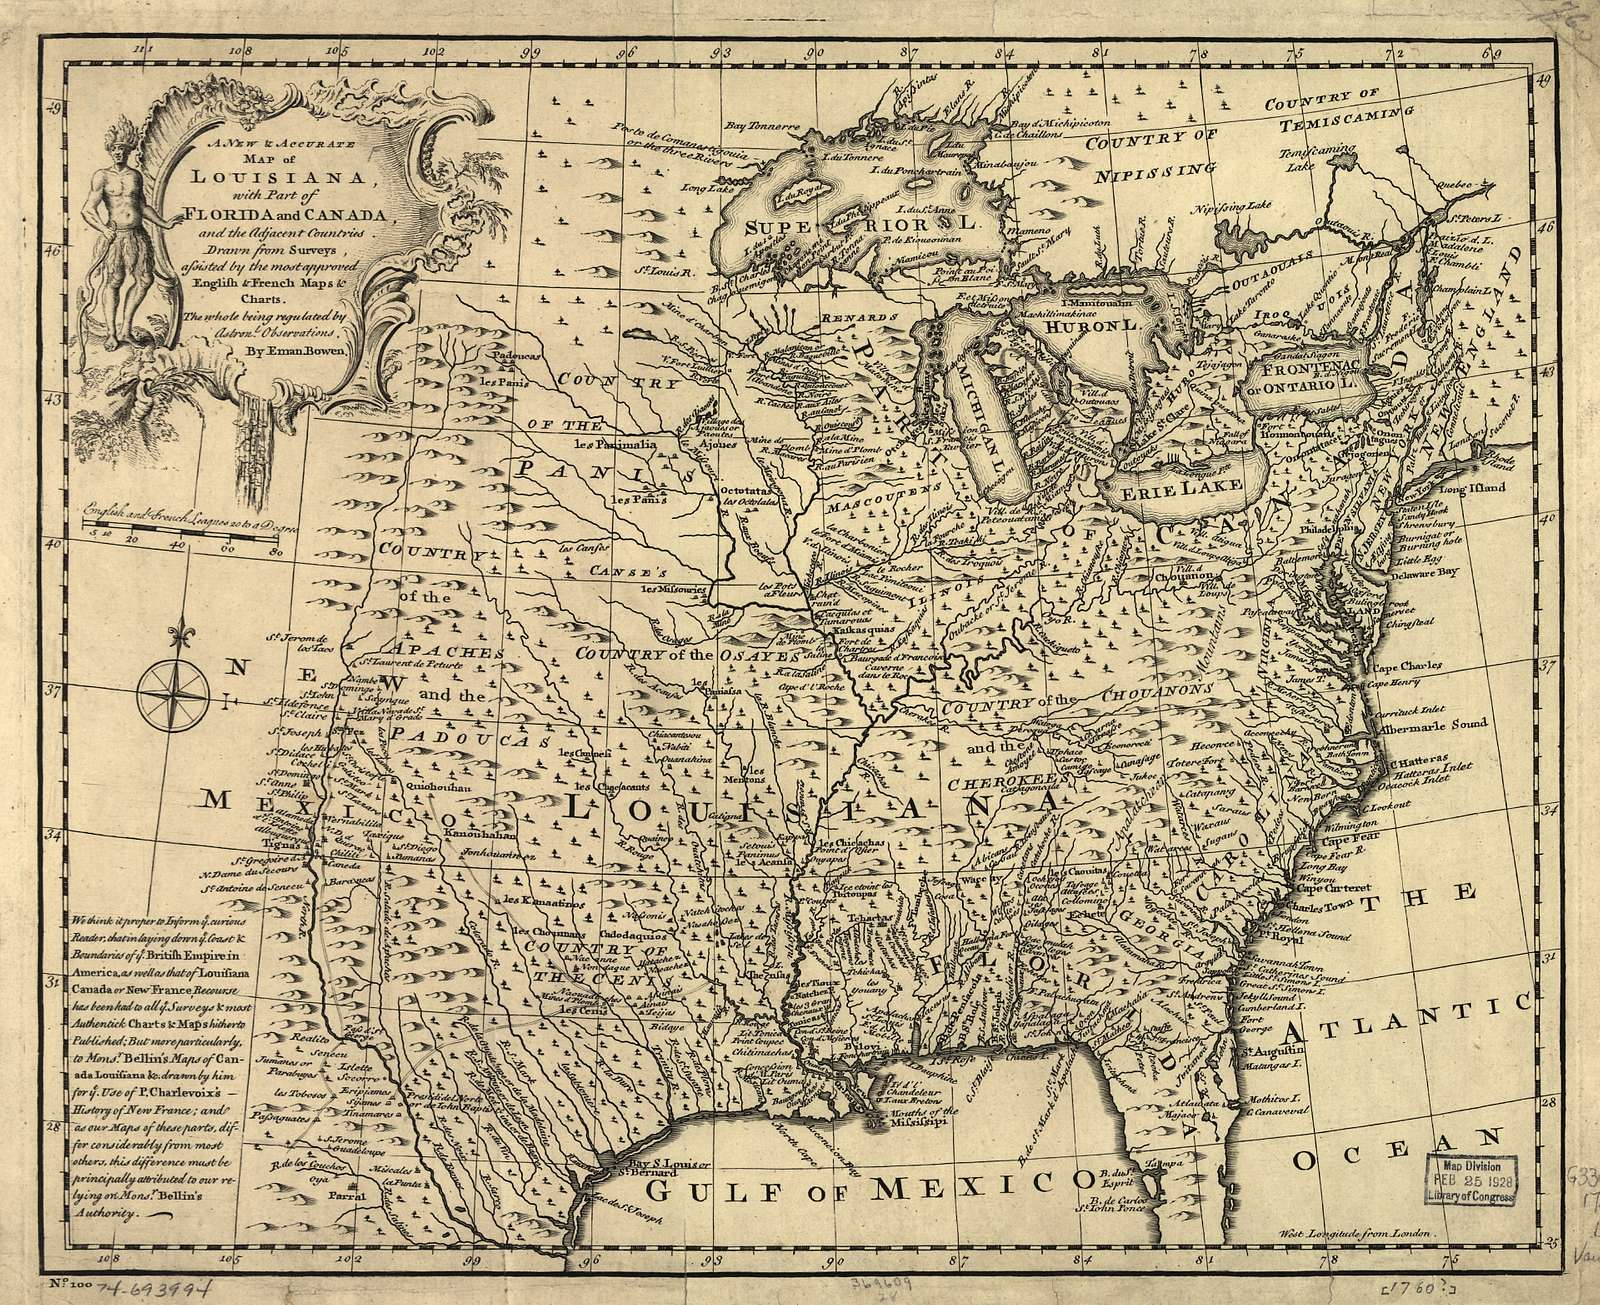 A new & accurate map of Louisiana, with part of Florida and Canada, and the adjacent countries.